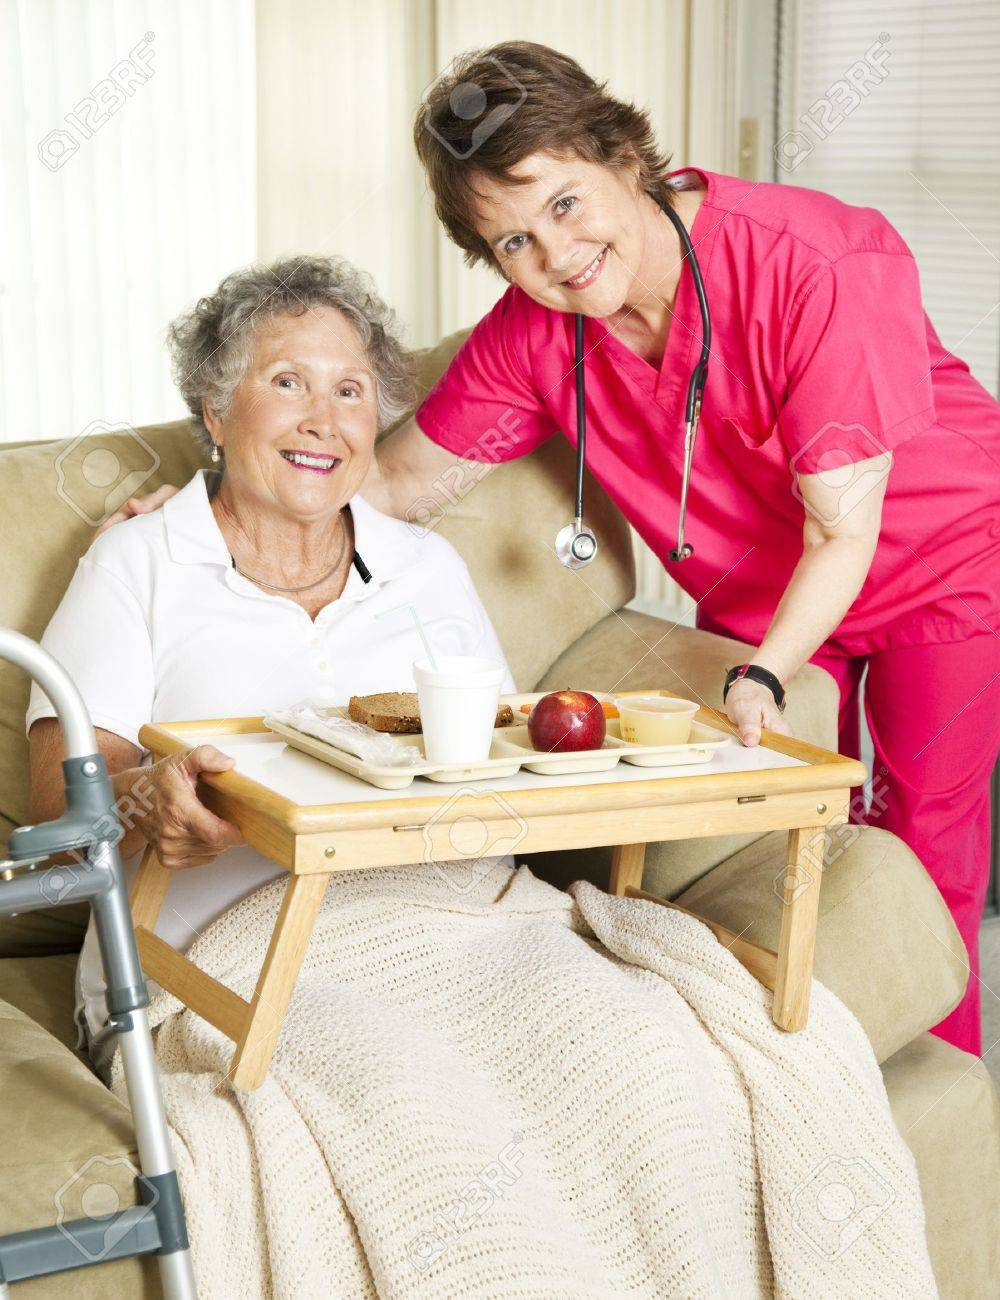 Caring nurse brings meal to home-bound senior woman. Stock Photo - 8728049